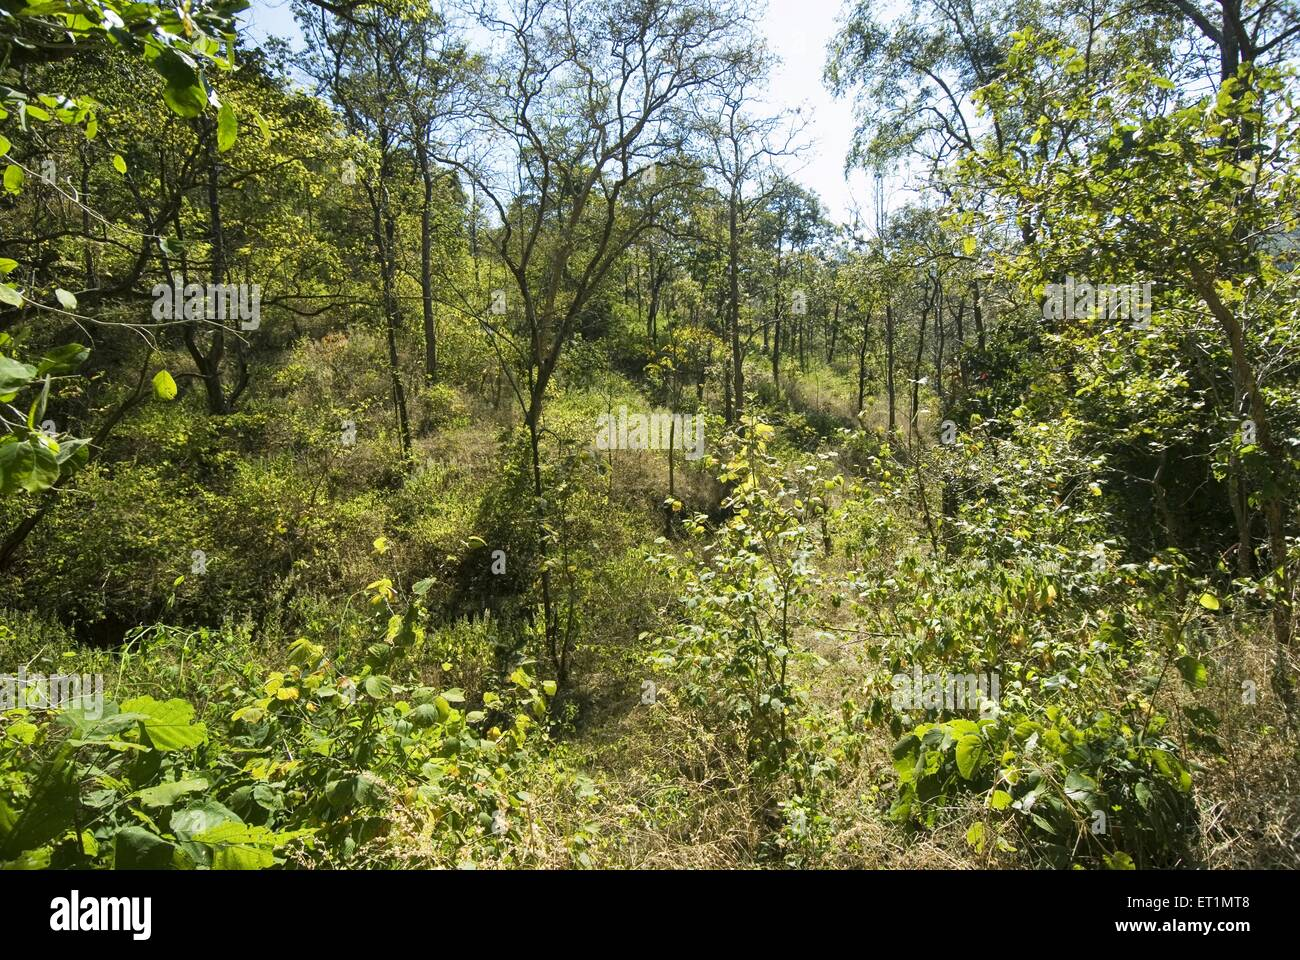 Vegetation and greenery and shrubbery deep forest at Melghat sanctuary ; district Amravati ; Maharashtra ; India - Stock Image